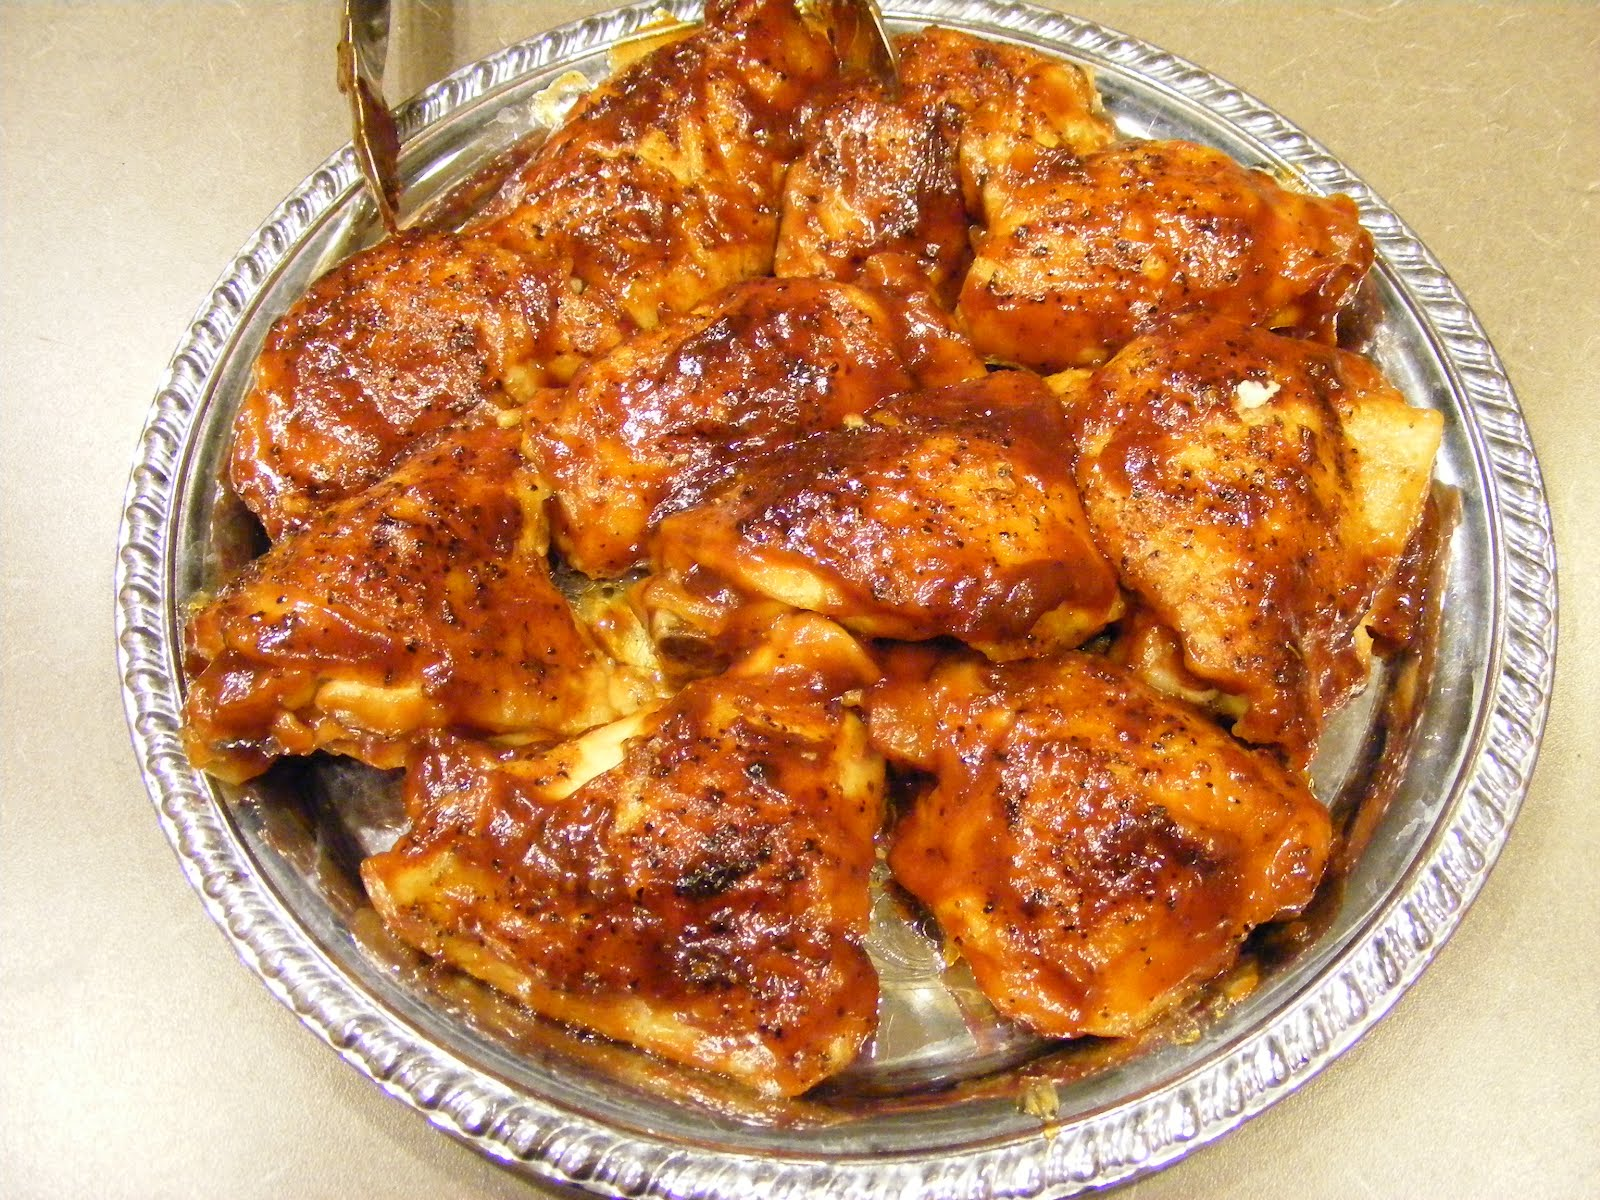 ... vinegar and spice oven ribs recipes dishmaps vinegar and spice oven